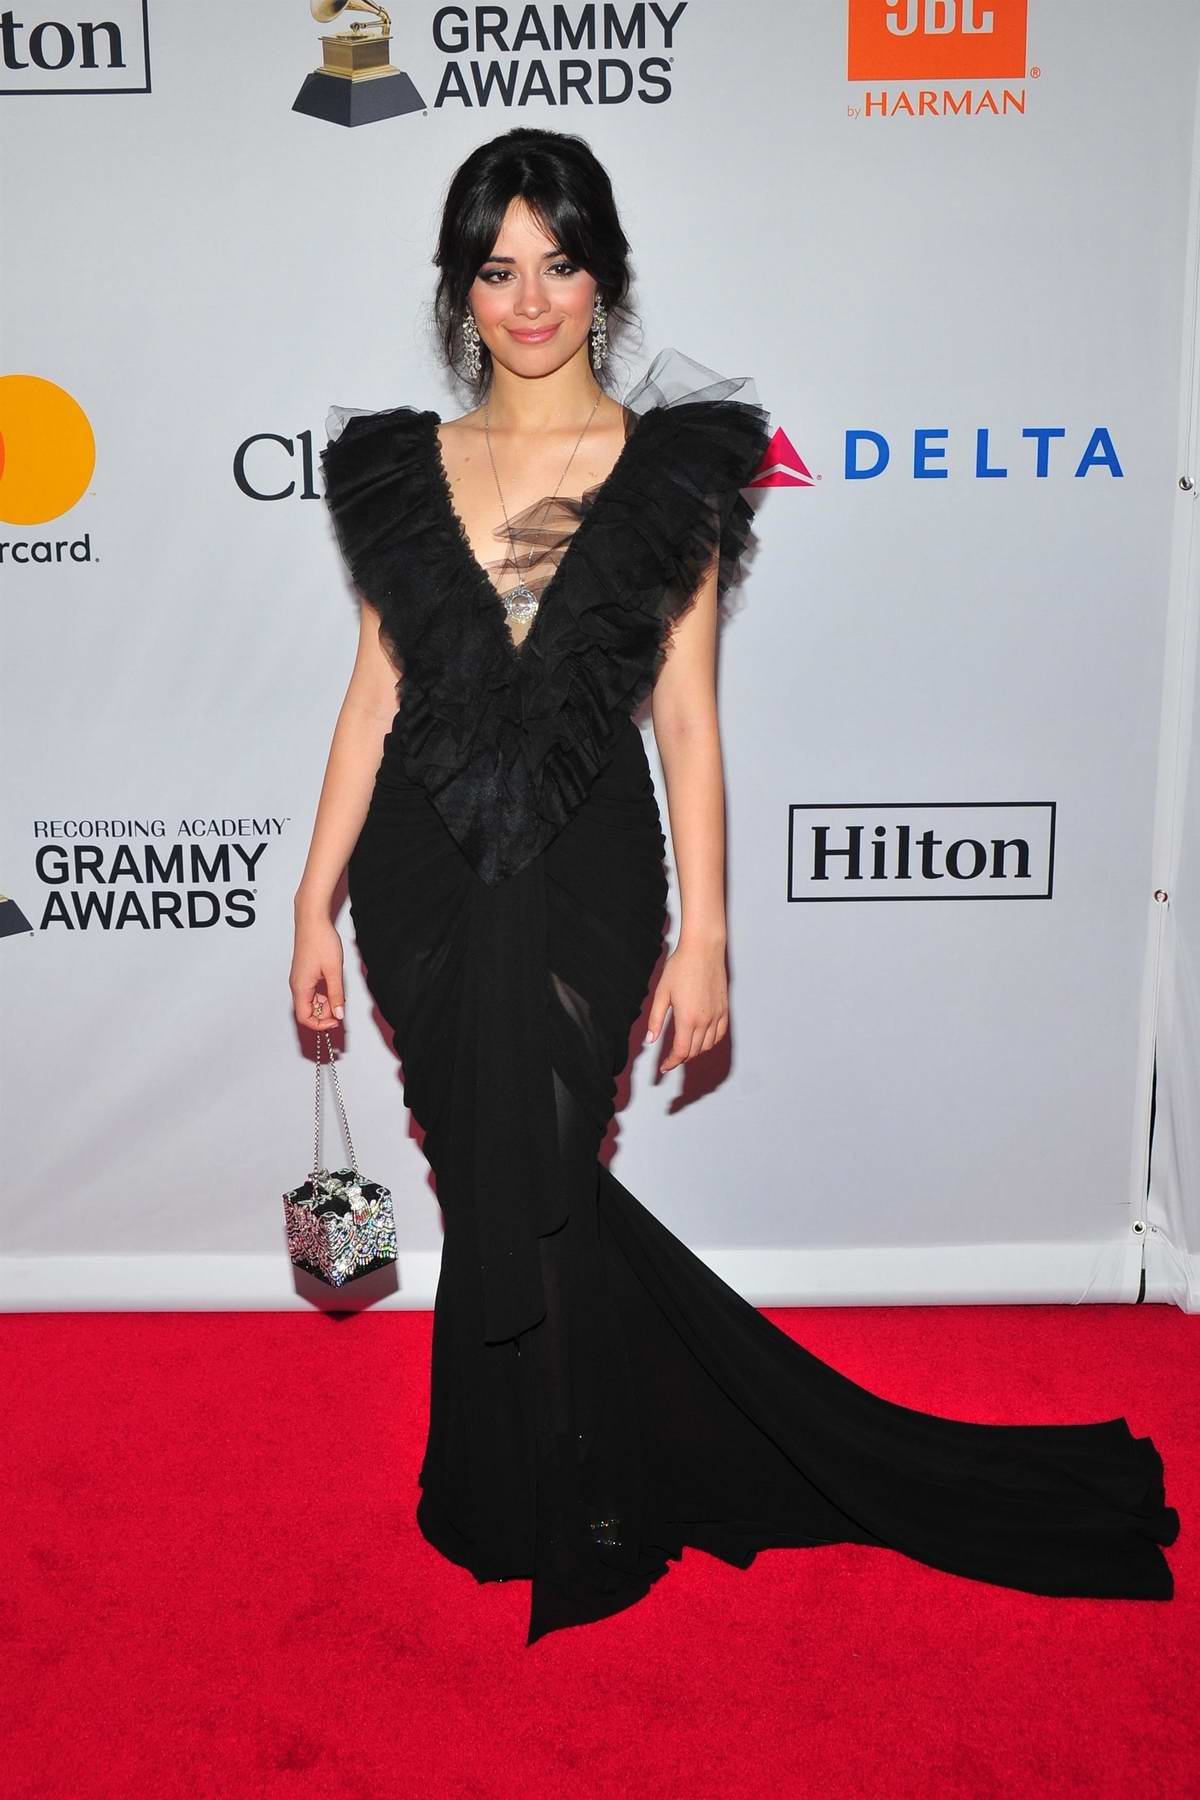 Camila Cabello at the Clive Davis and Recording Academy Pre-Grammy Gala in New York City